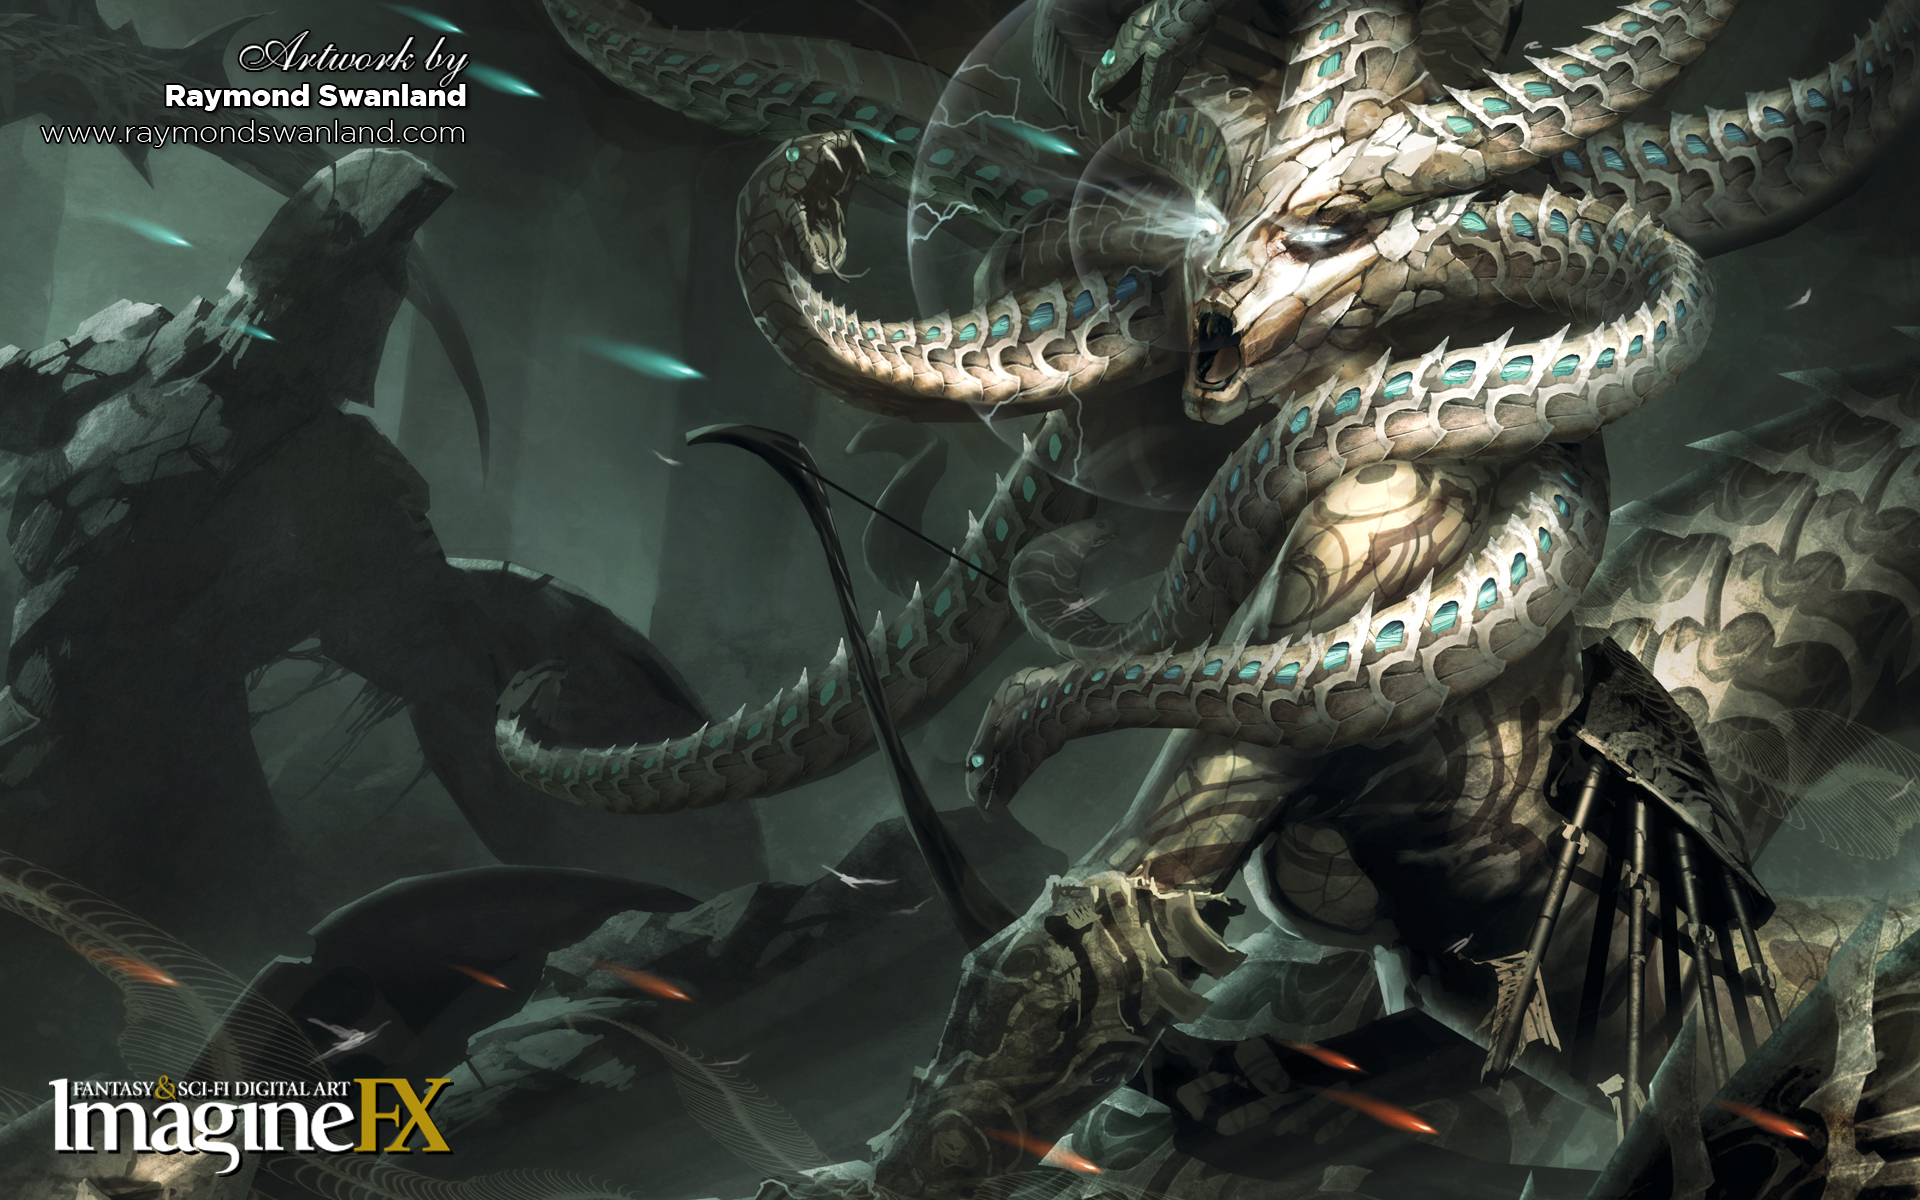 medusa snakes fantasy art HD Wallpaper